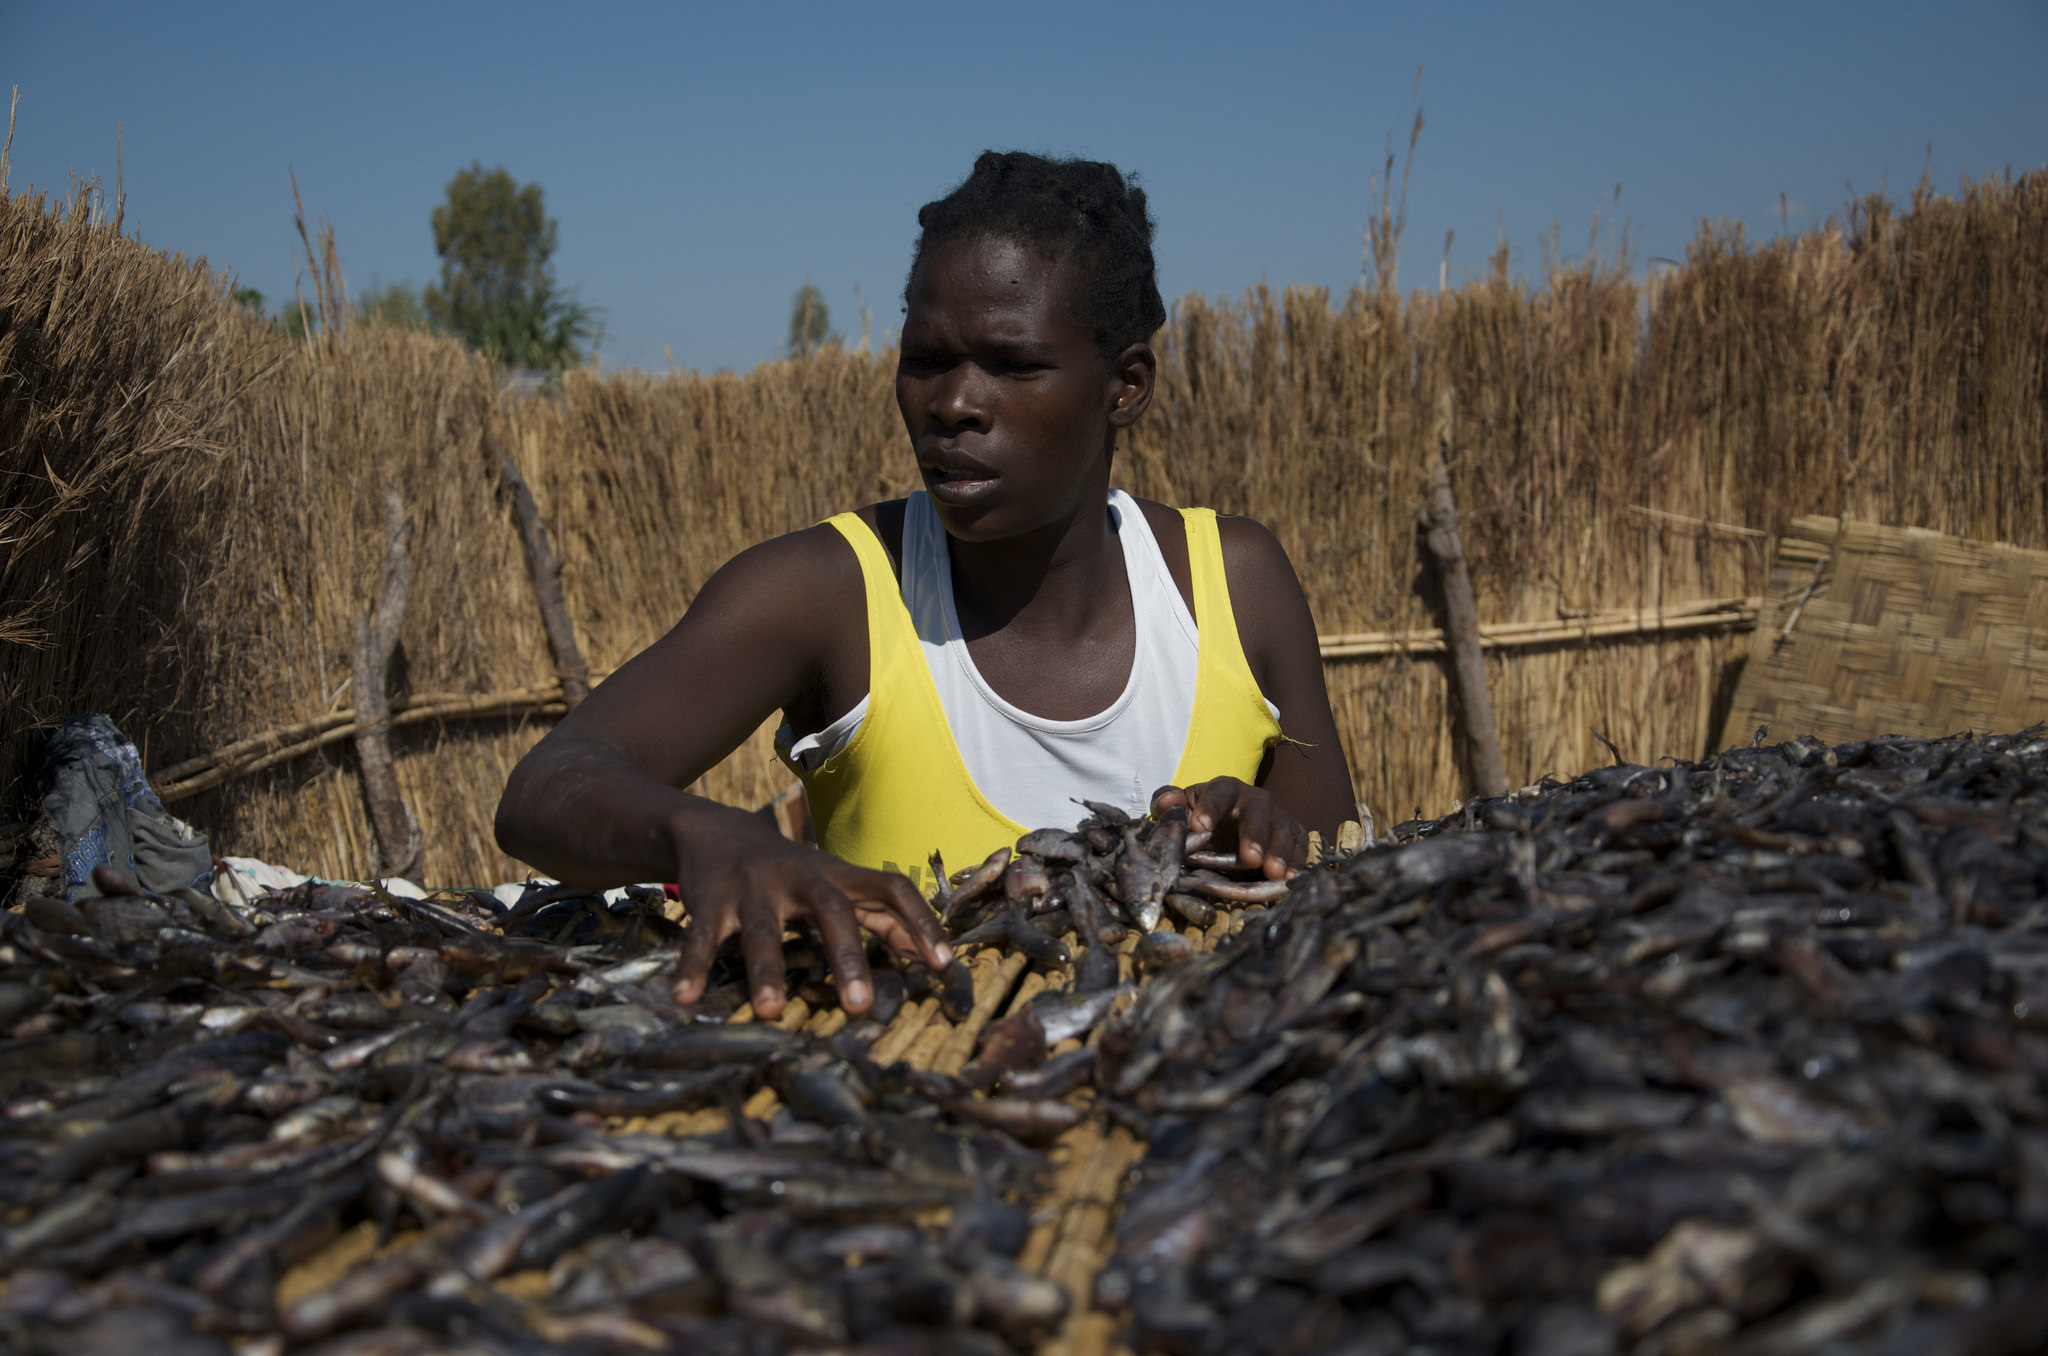 Woman drying fish, Zambia. Photo by Olek Kaminski, 2016. A woman turns her fish as they dry on reed racks in Liyoyelo fishing camp, Mongu district, Western Province, Zambia.